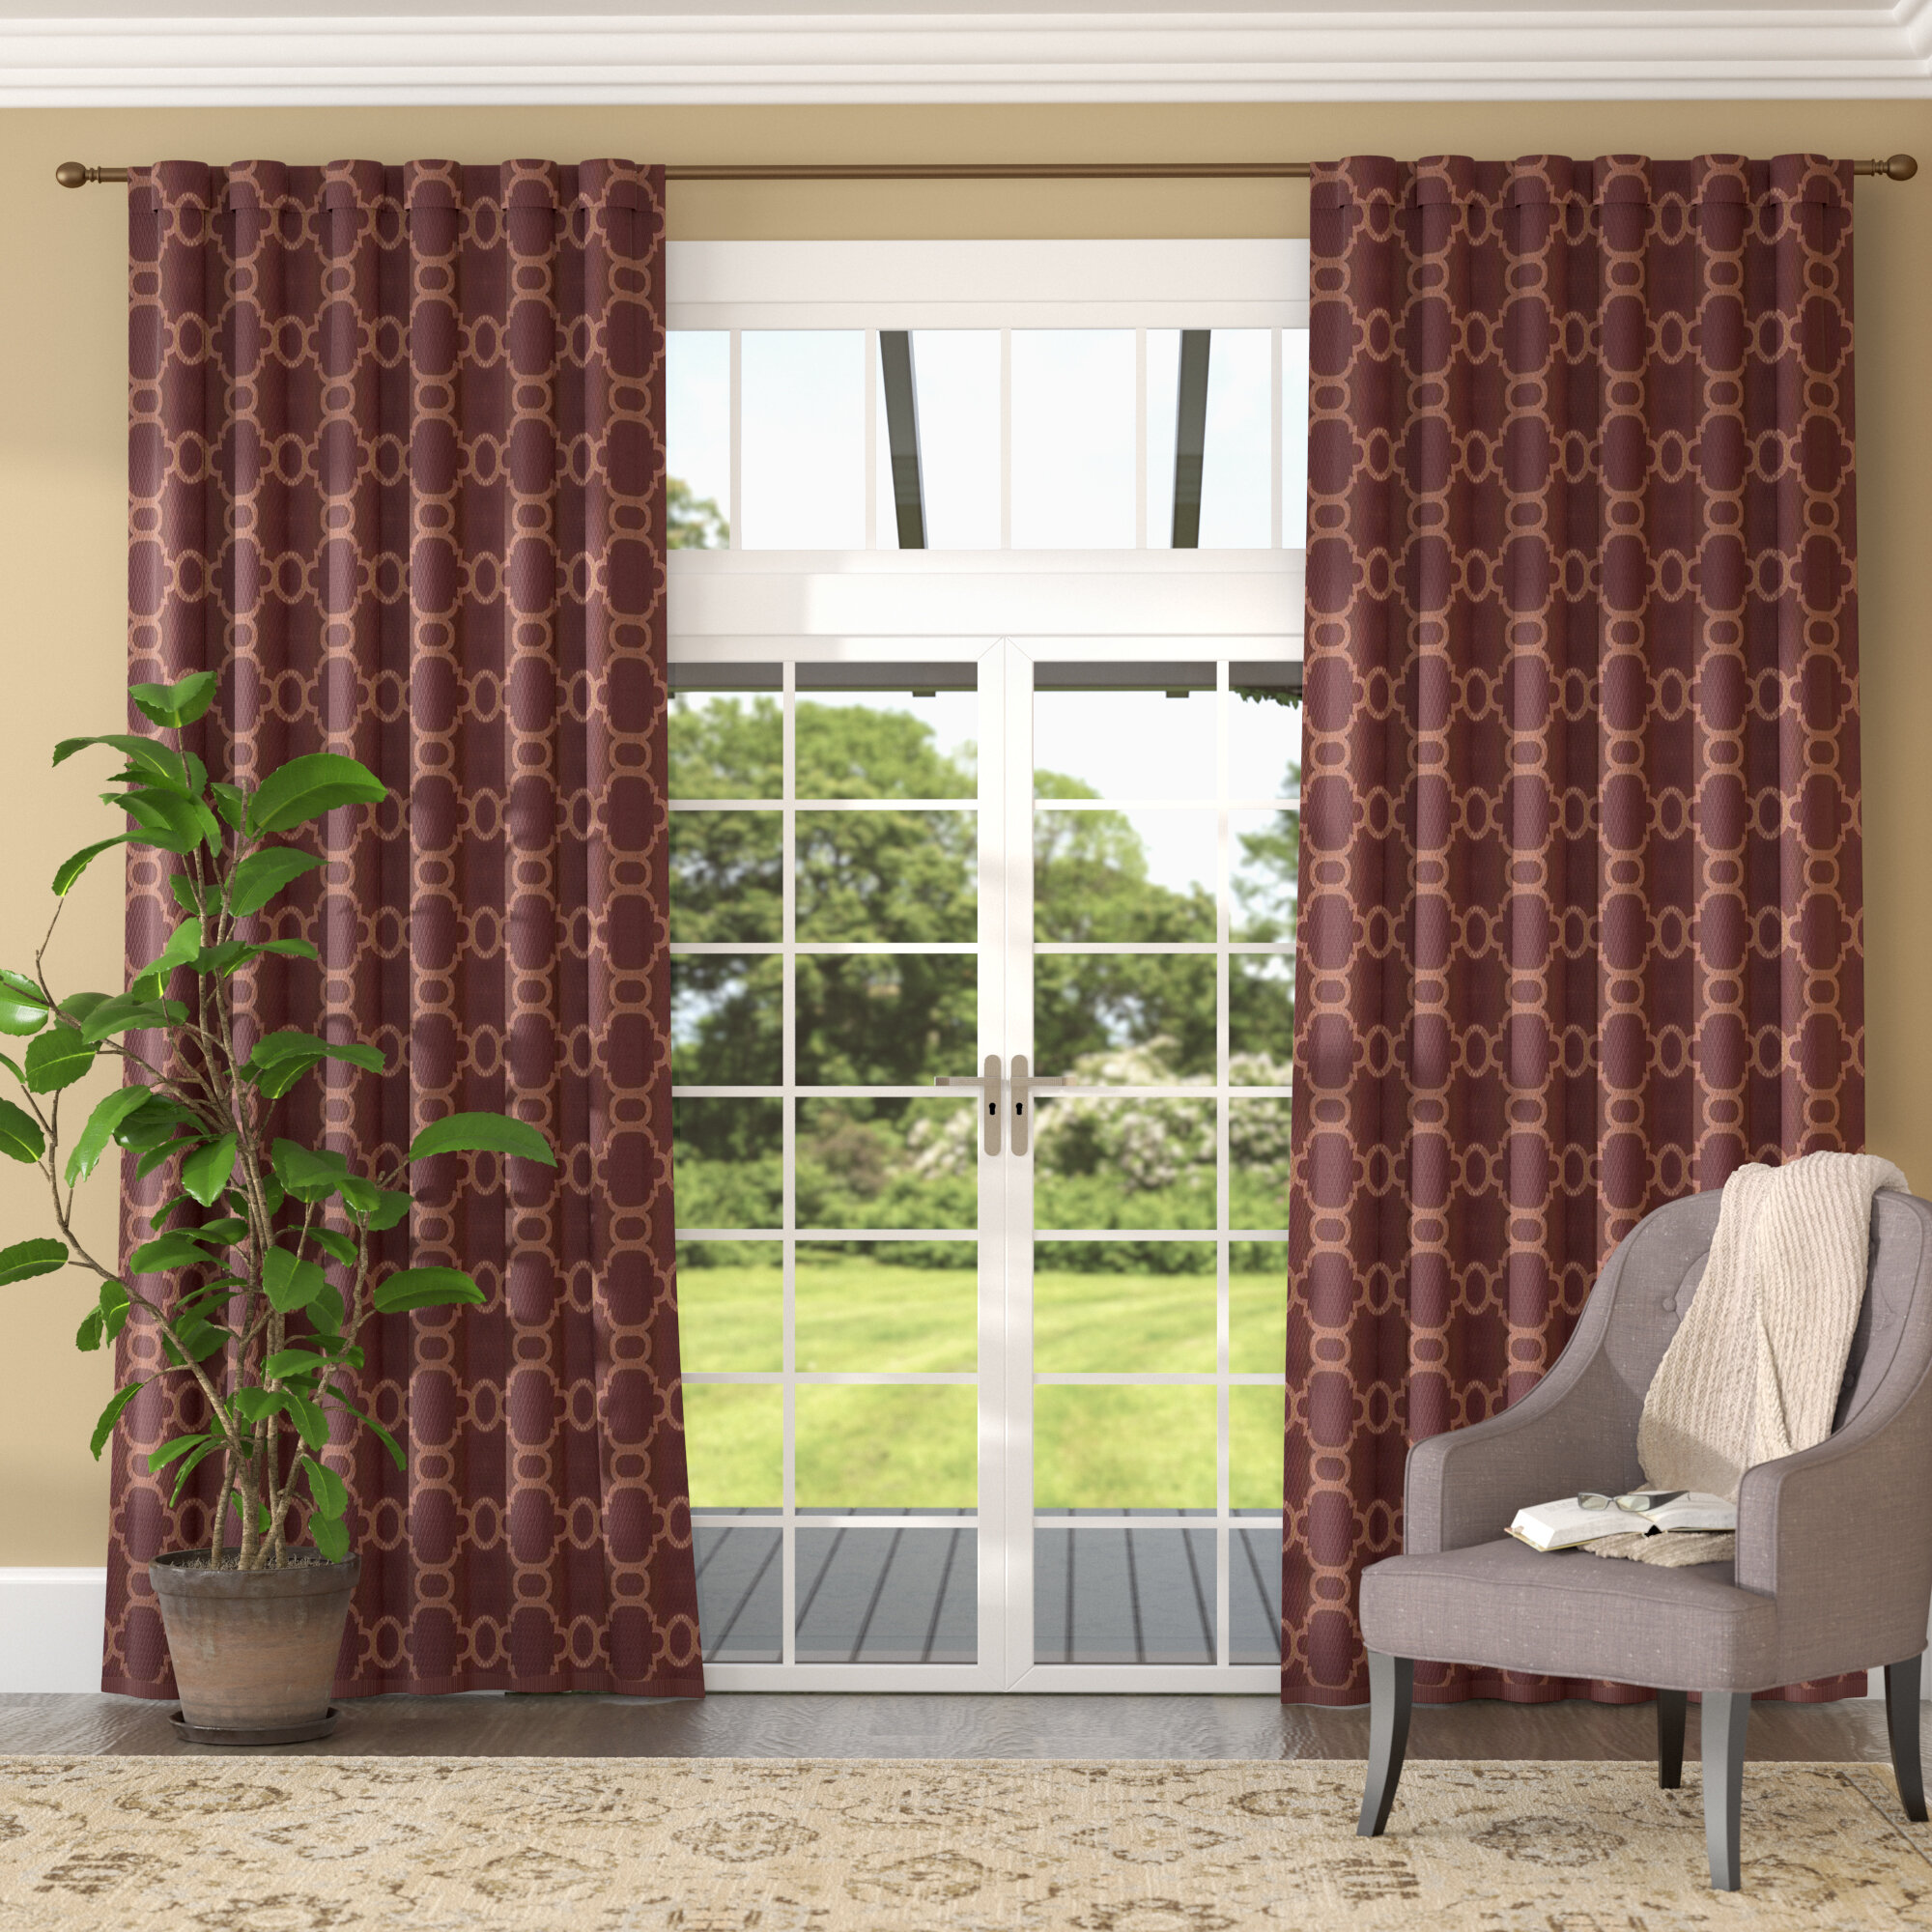 curtain thermal gray curtains of products quatrefoil panels trellis modern white panel window moroccan pair blackout treatment grommet set